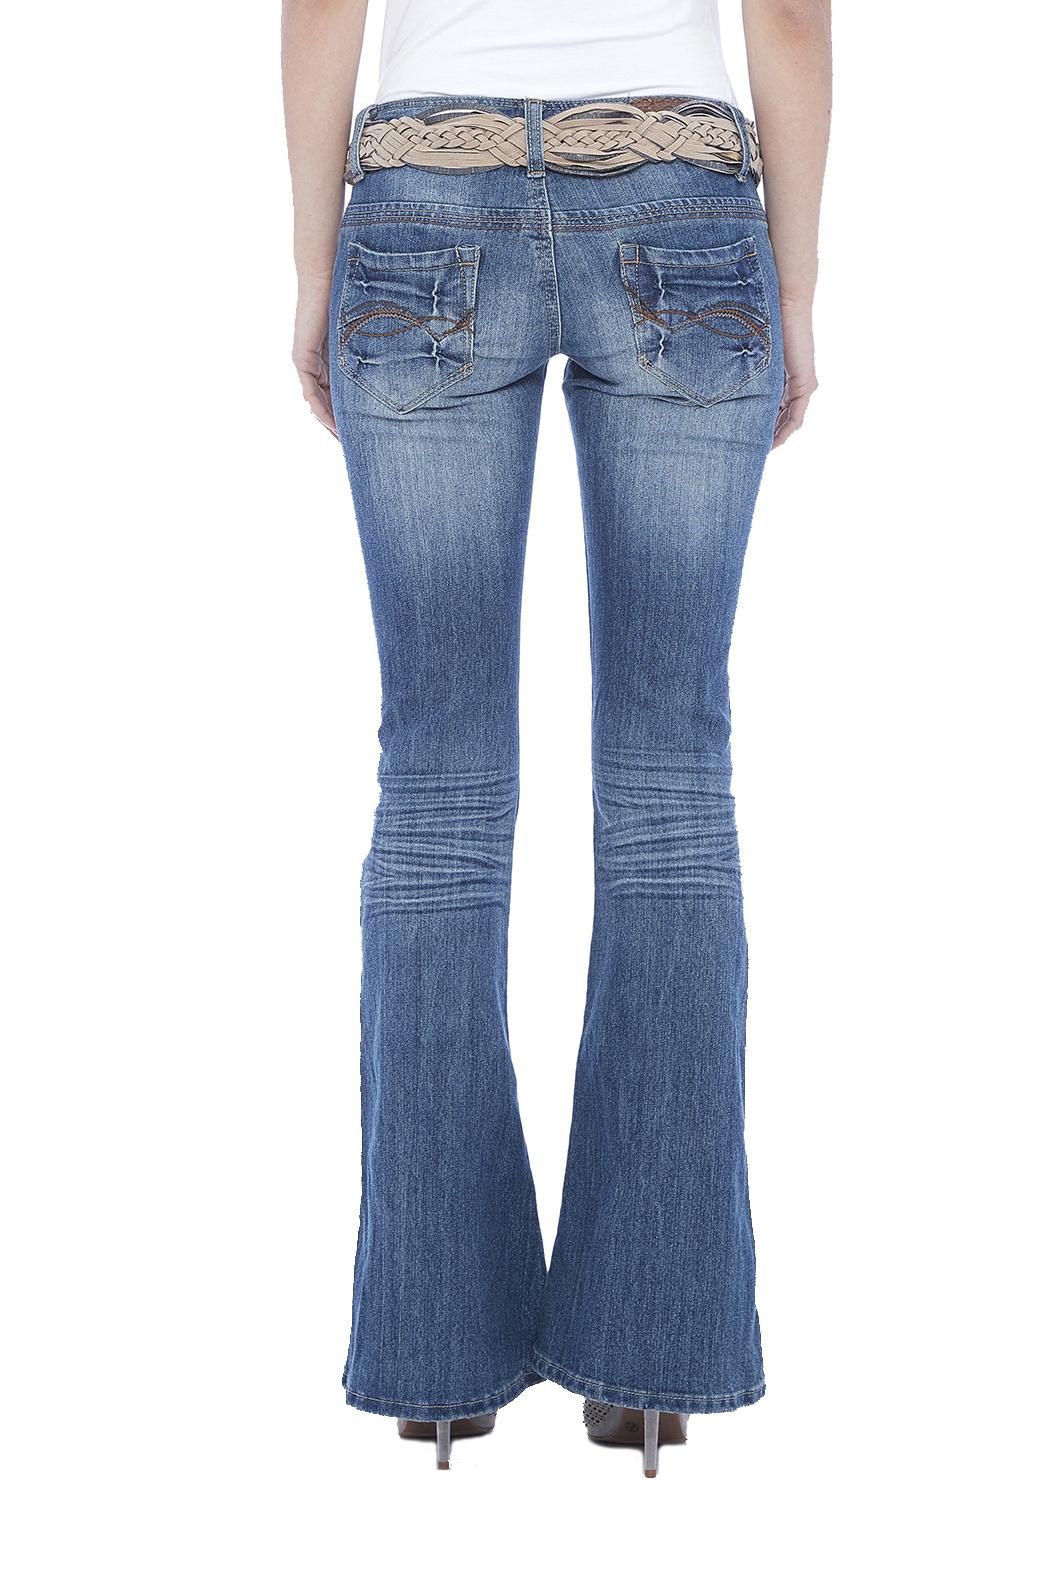 Dollhouse Low Rise Flare Jeans - Back Cropped Image